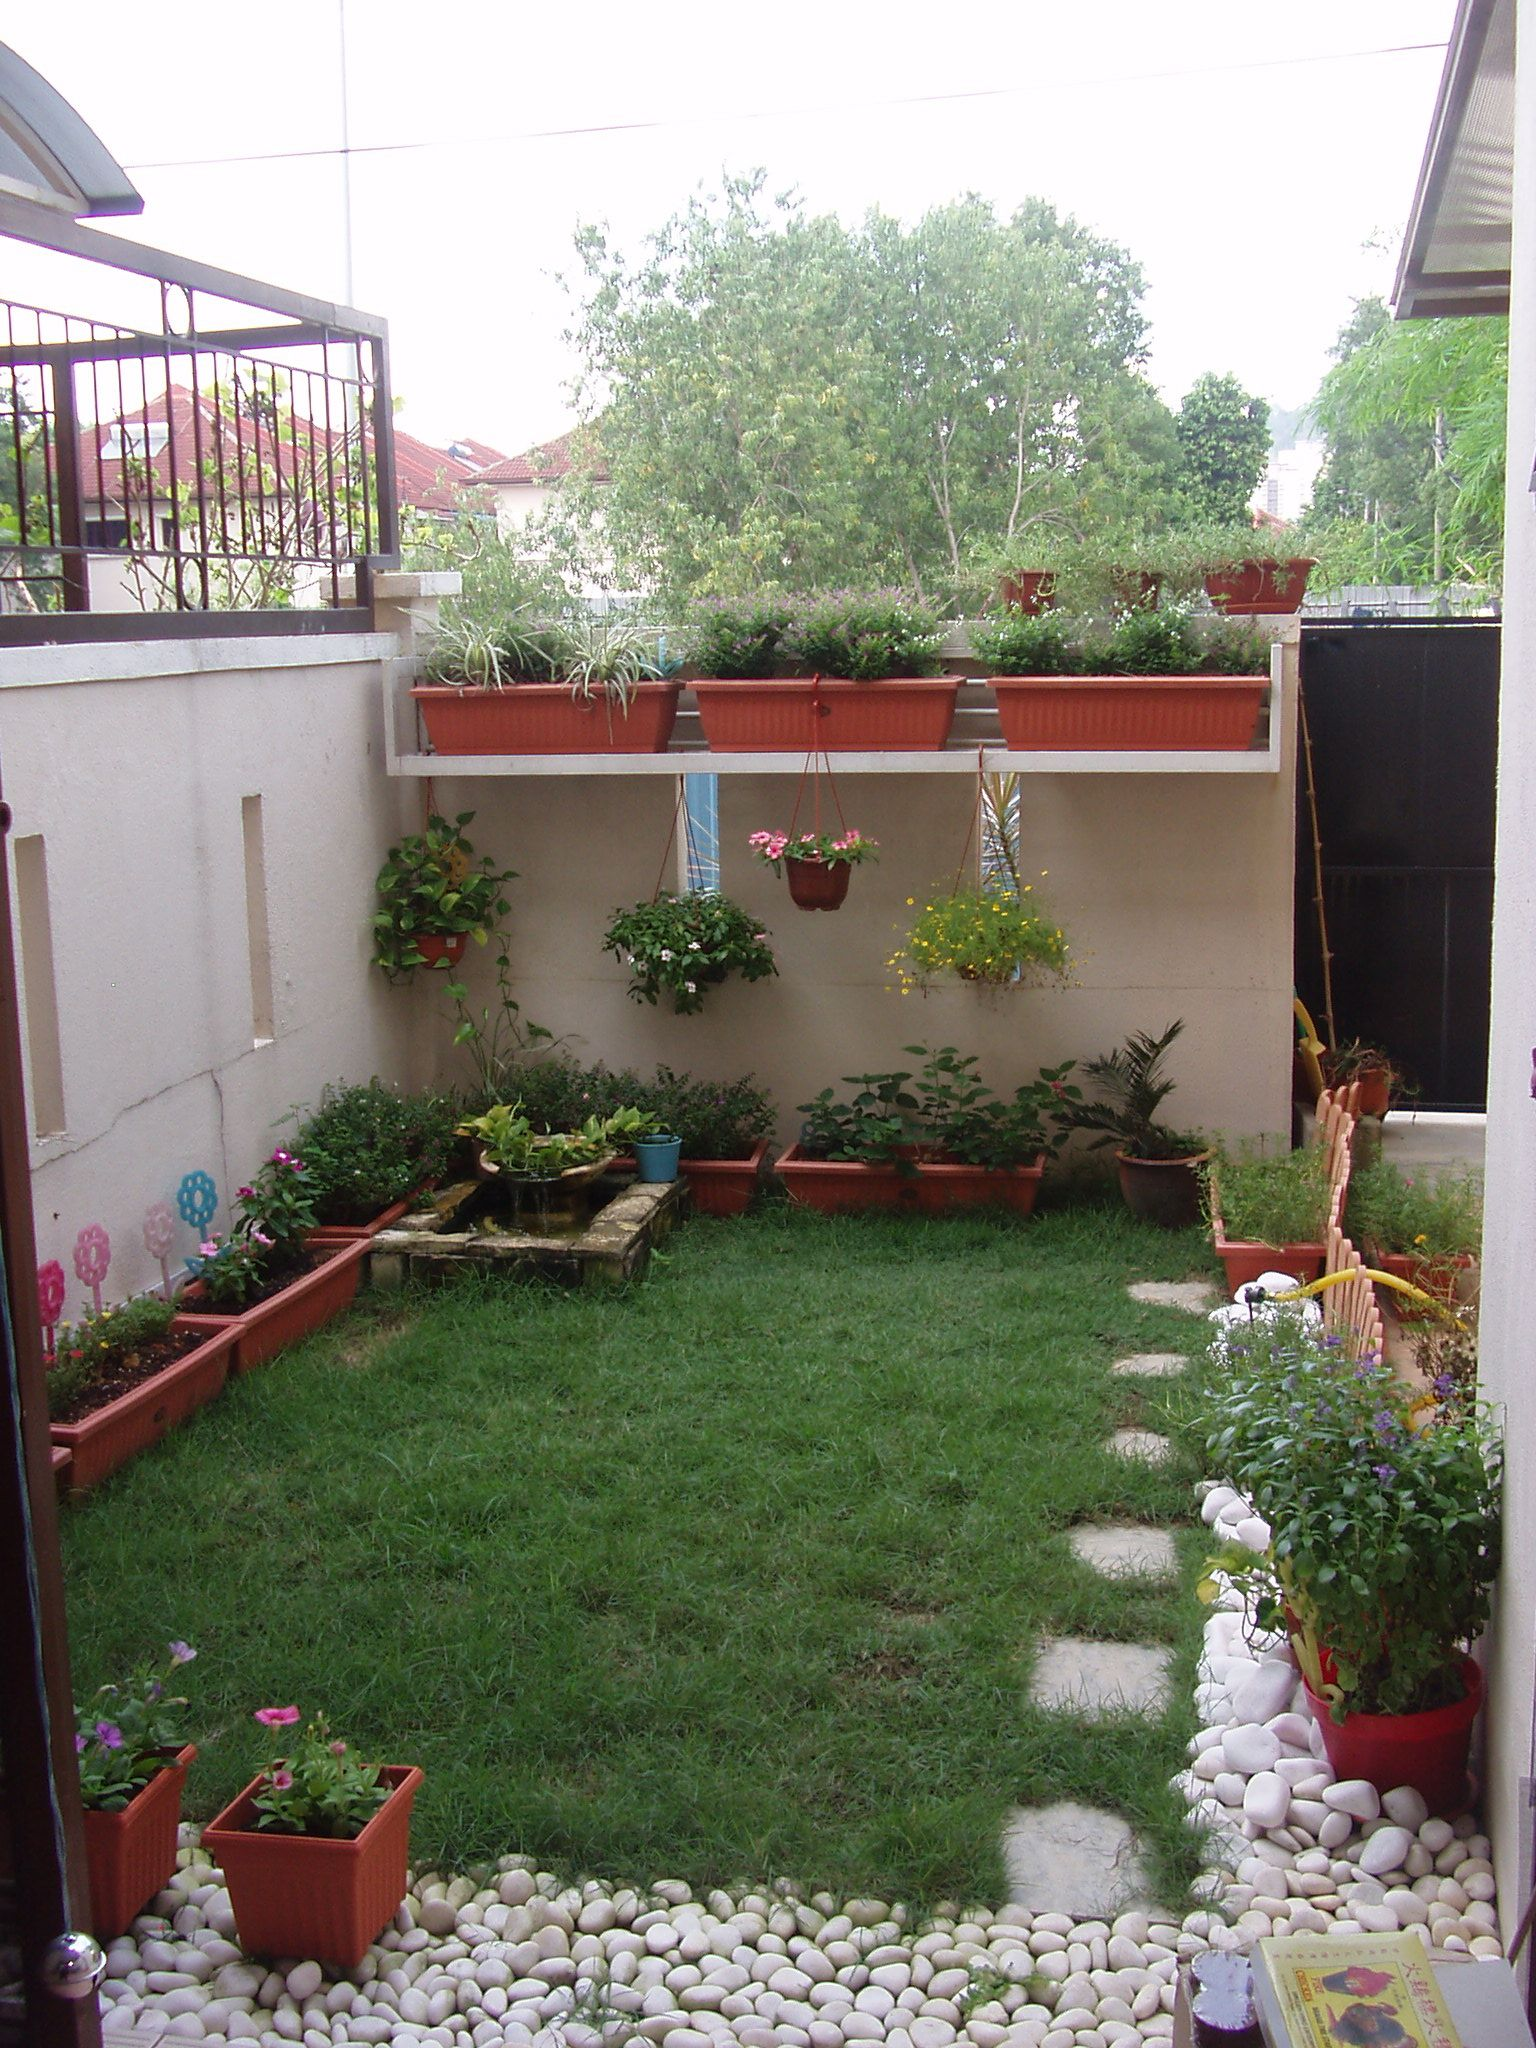 Small backyard ideas can be your solution in managing the yard to more functional visit image link for details organicgarden also landscaping simple and creativesimple